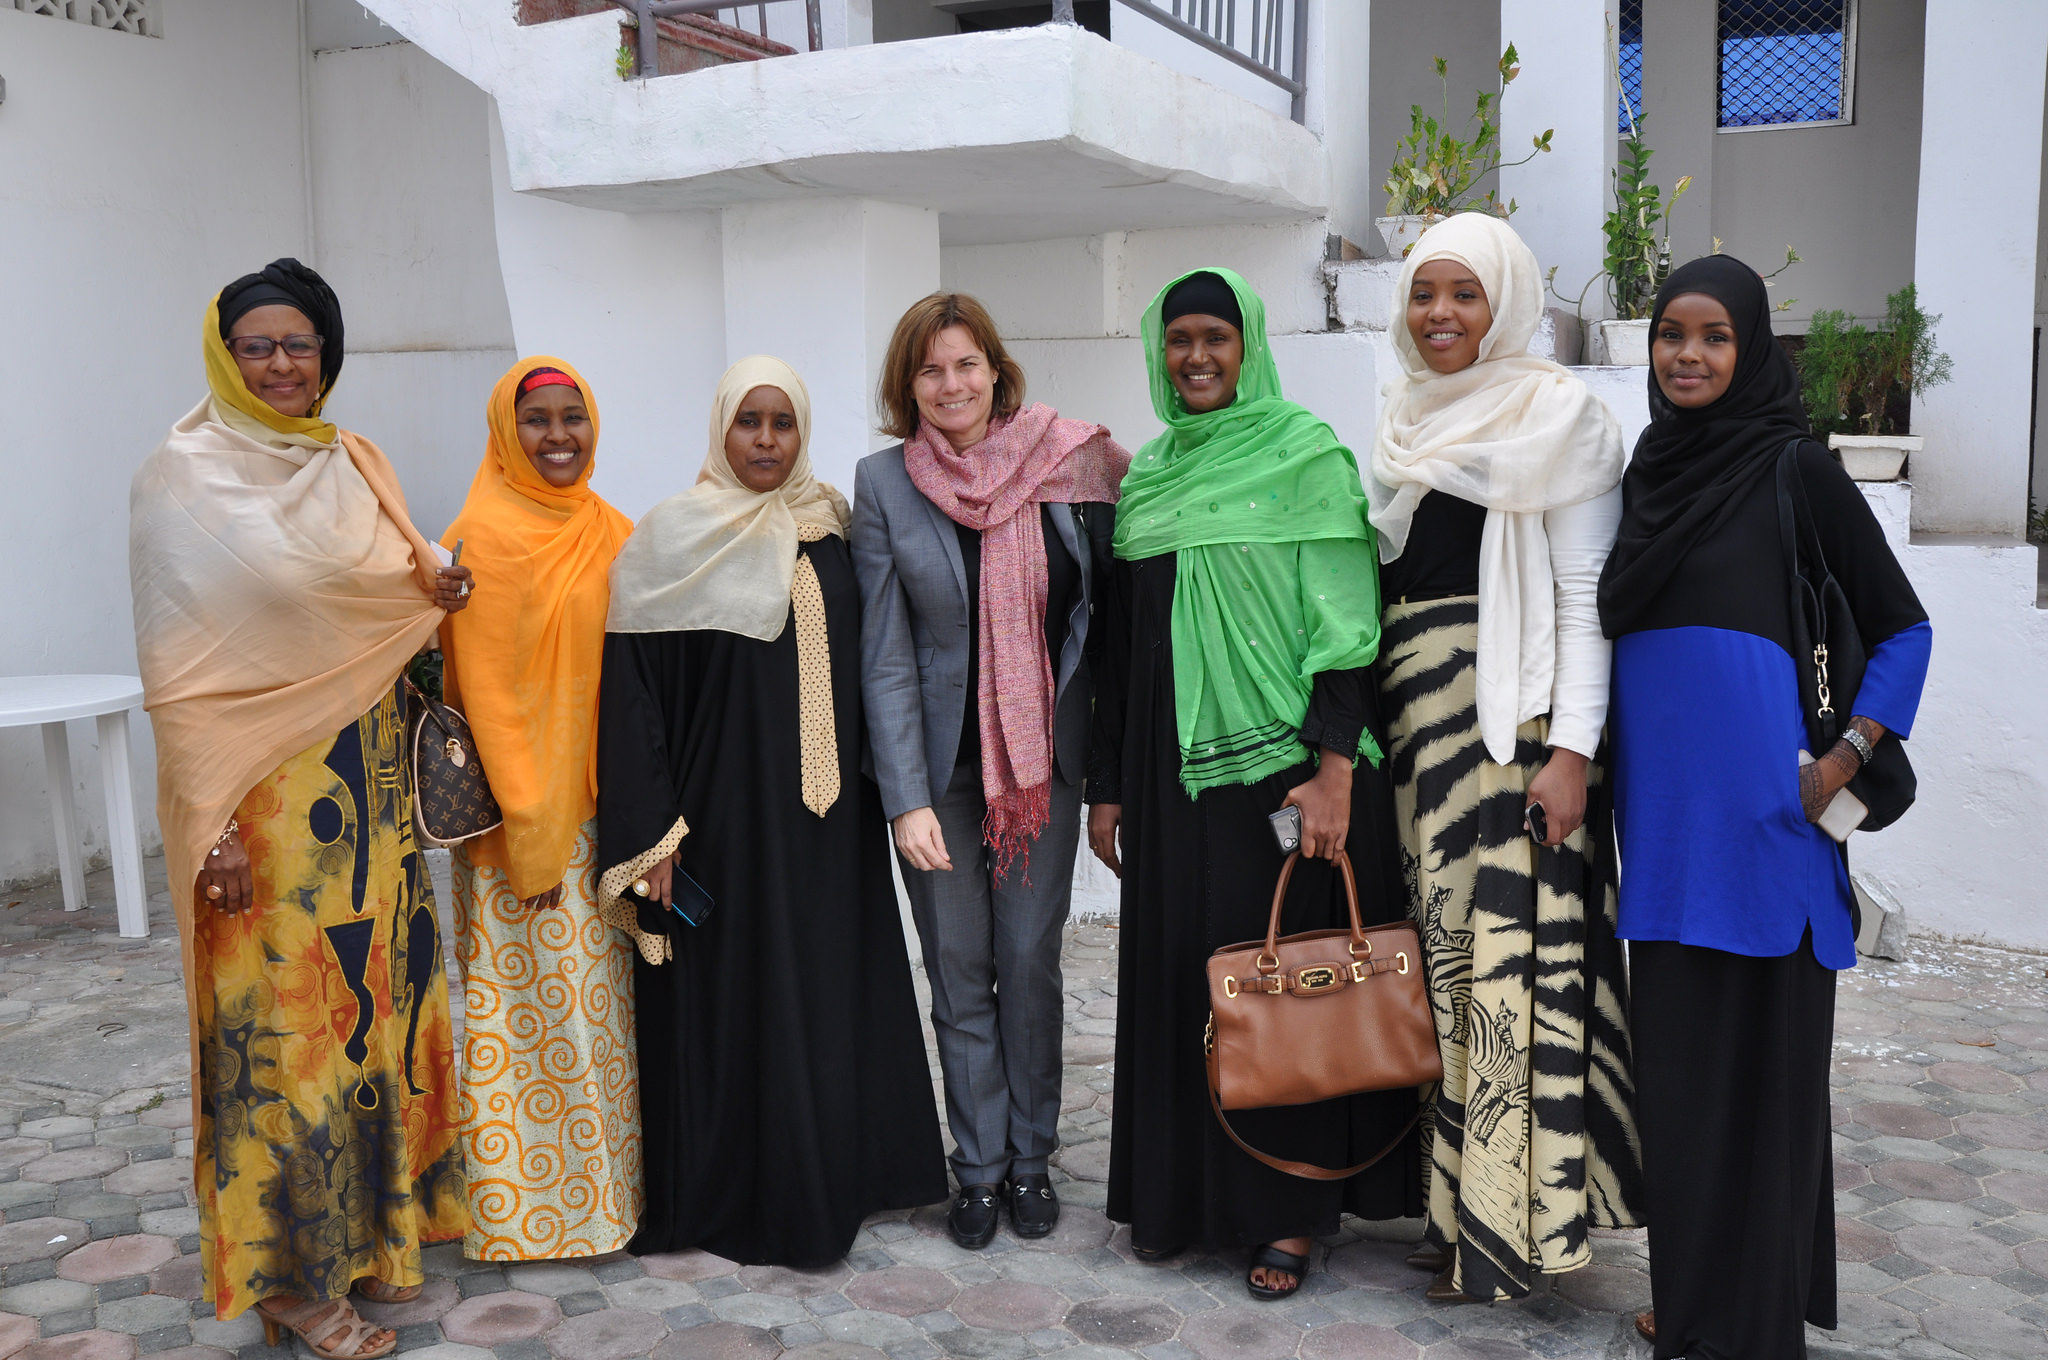 Isabella Lövin meeting women's rights activists in Somalia.